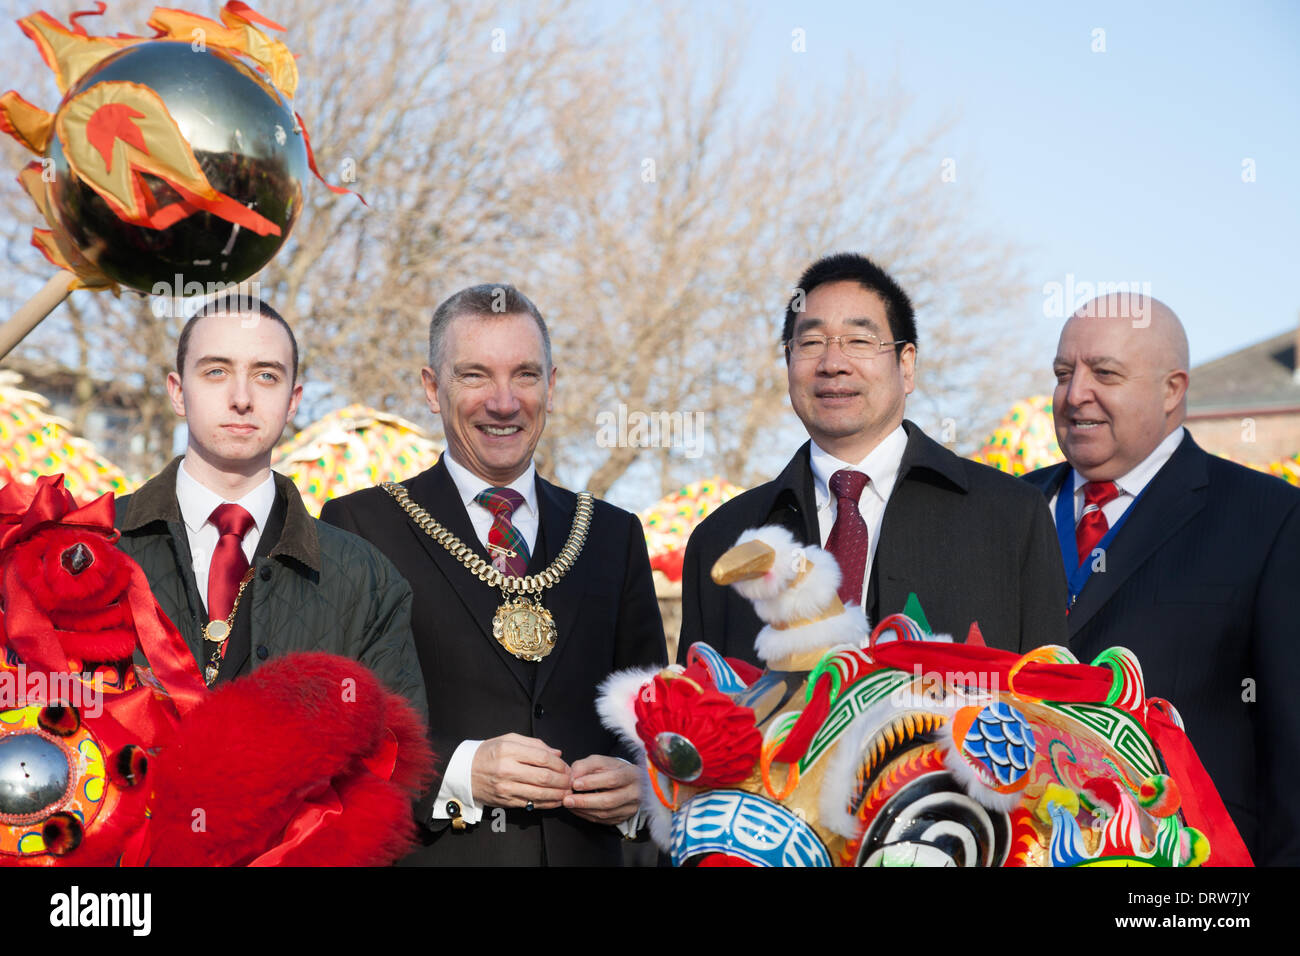 London, UK. 2nd Feb 2014. Lord Mayor of Liverpool Gary Millar and Liverpool Mayor Joe Anderson pose with Chinese Dragons during Chinese new Year celebrations in Liverpool. Liverpool has one of the oldest Chinese communities in Europe. Credit:  Adam Vaughan/Alamy Live News - Stock Image